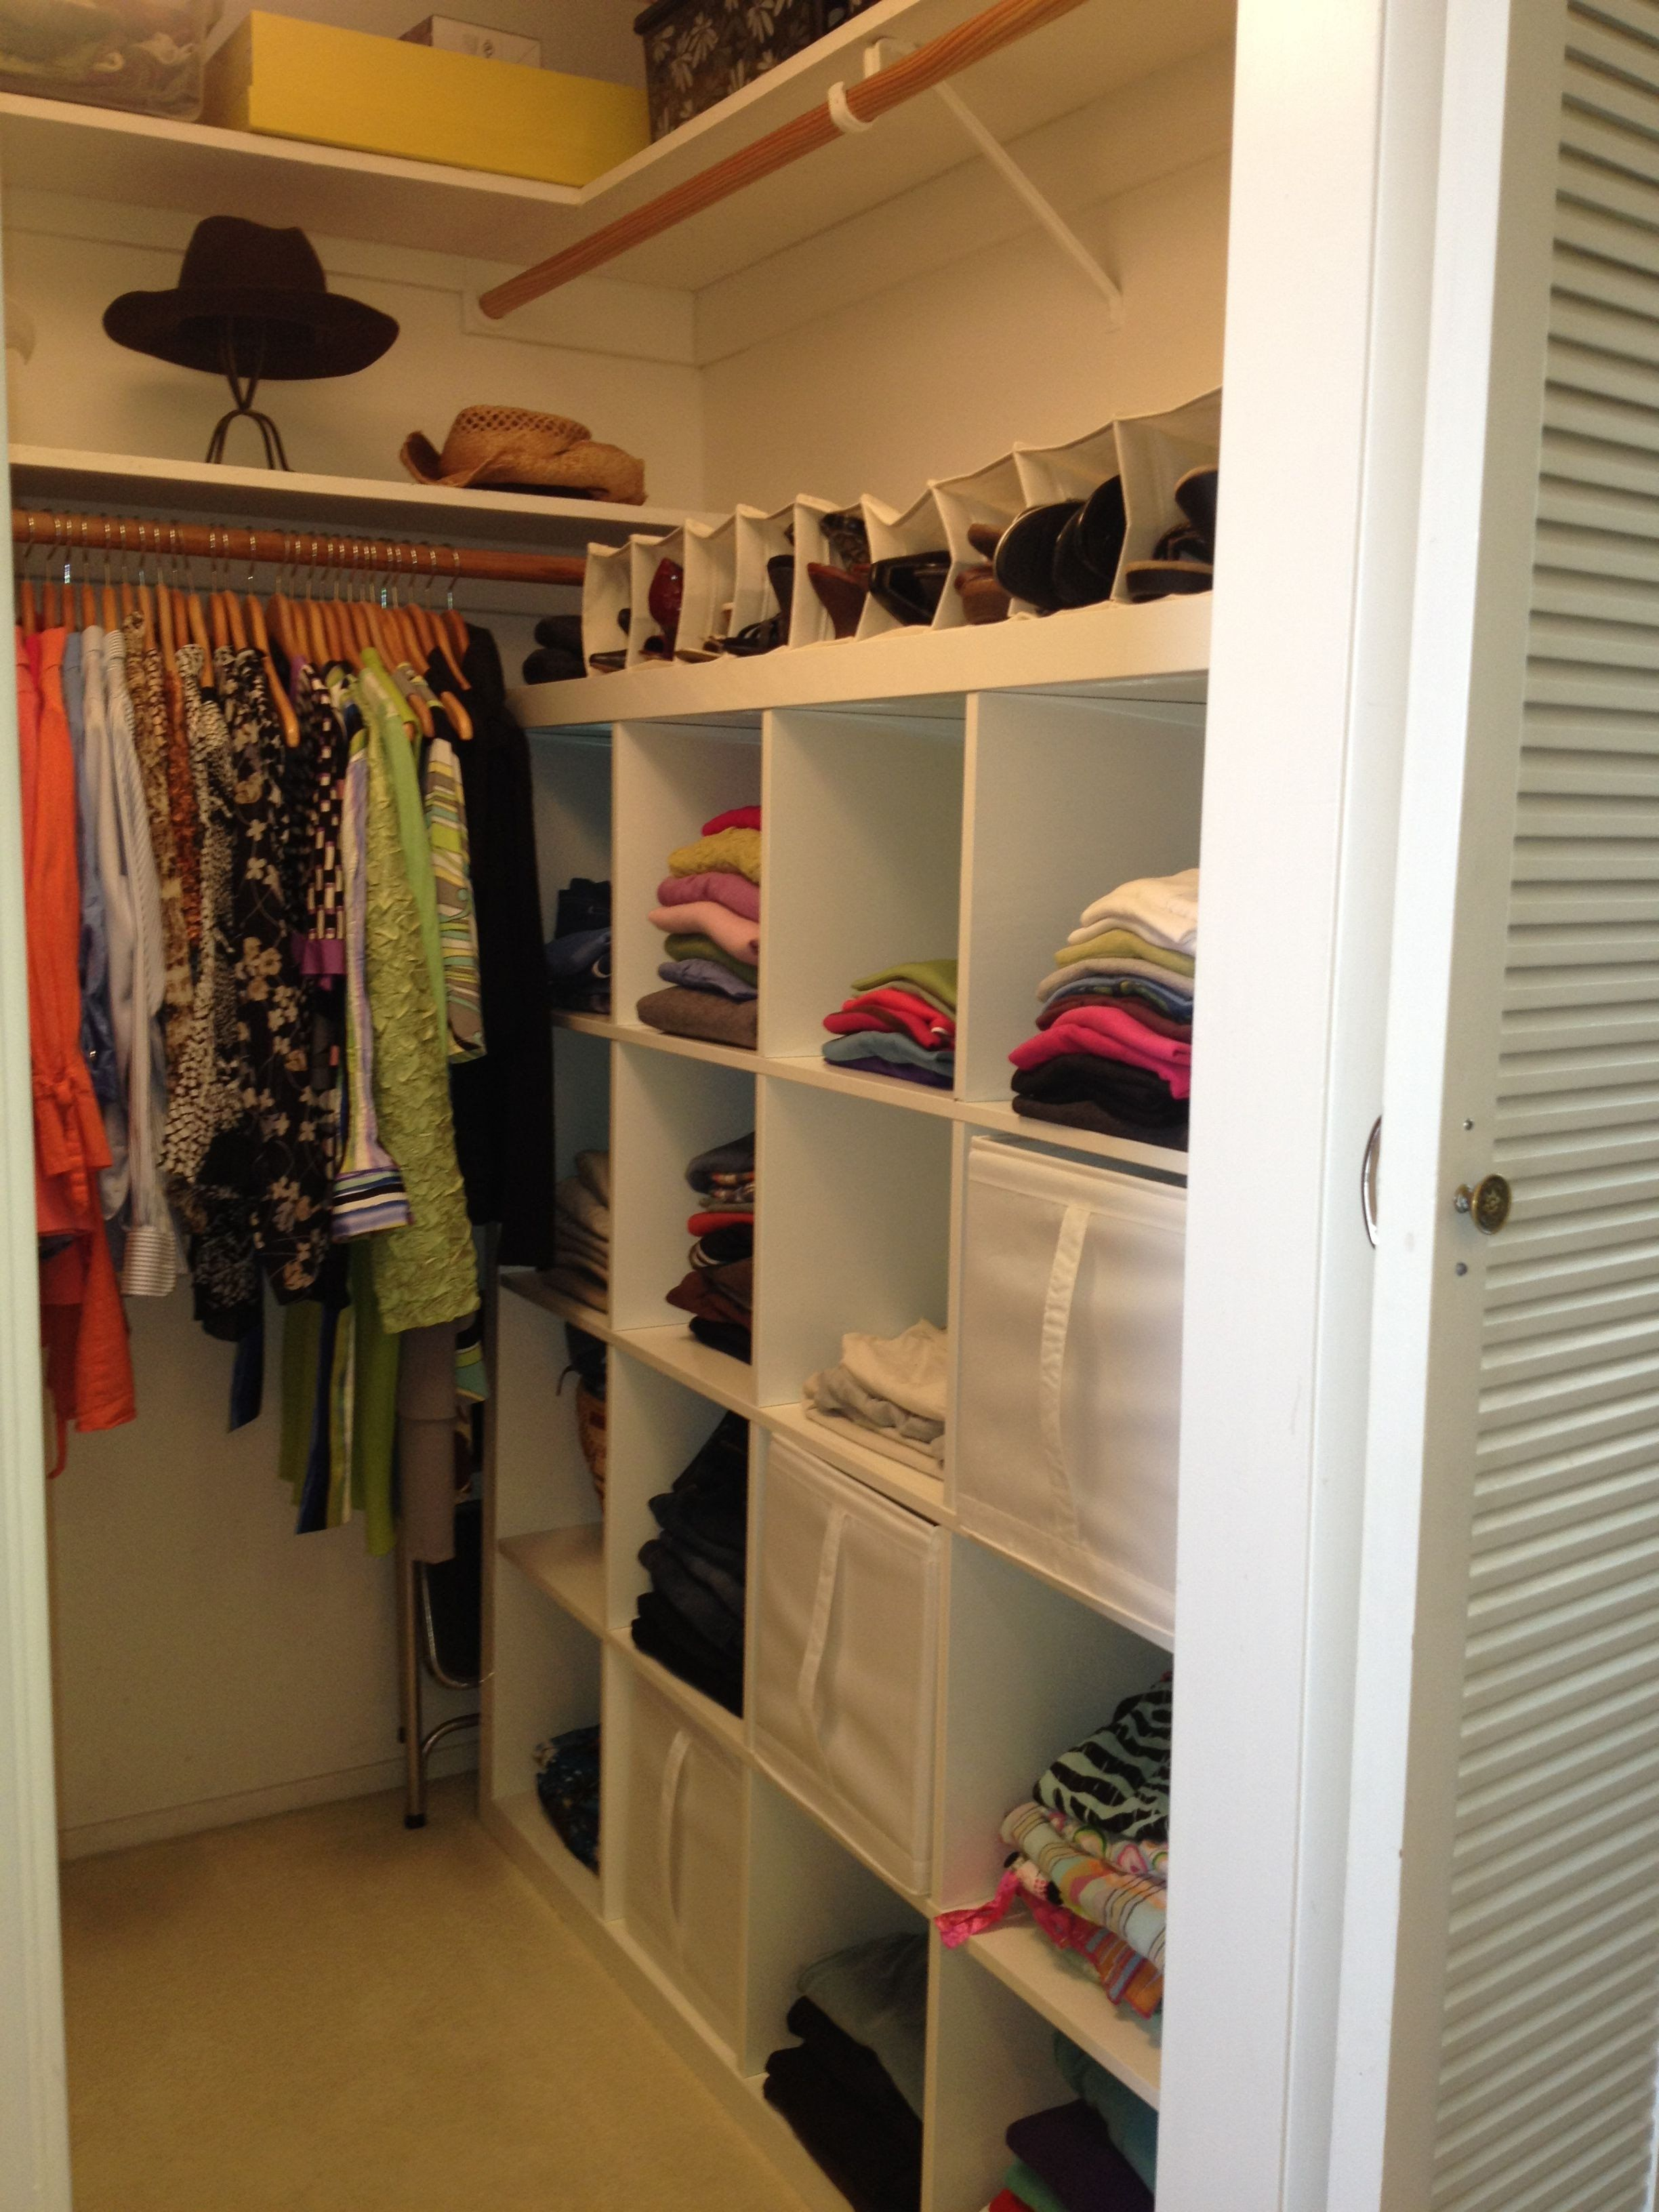 Small Walk In Closet Ideas Diy Inspirational Eagles Roost Home Interior Design Ideas In 2020 Organizing Walk In Closet Bedroom Organization Closet Closet Bedroom